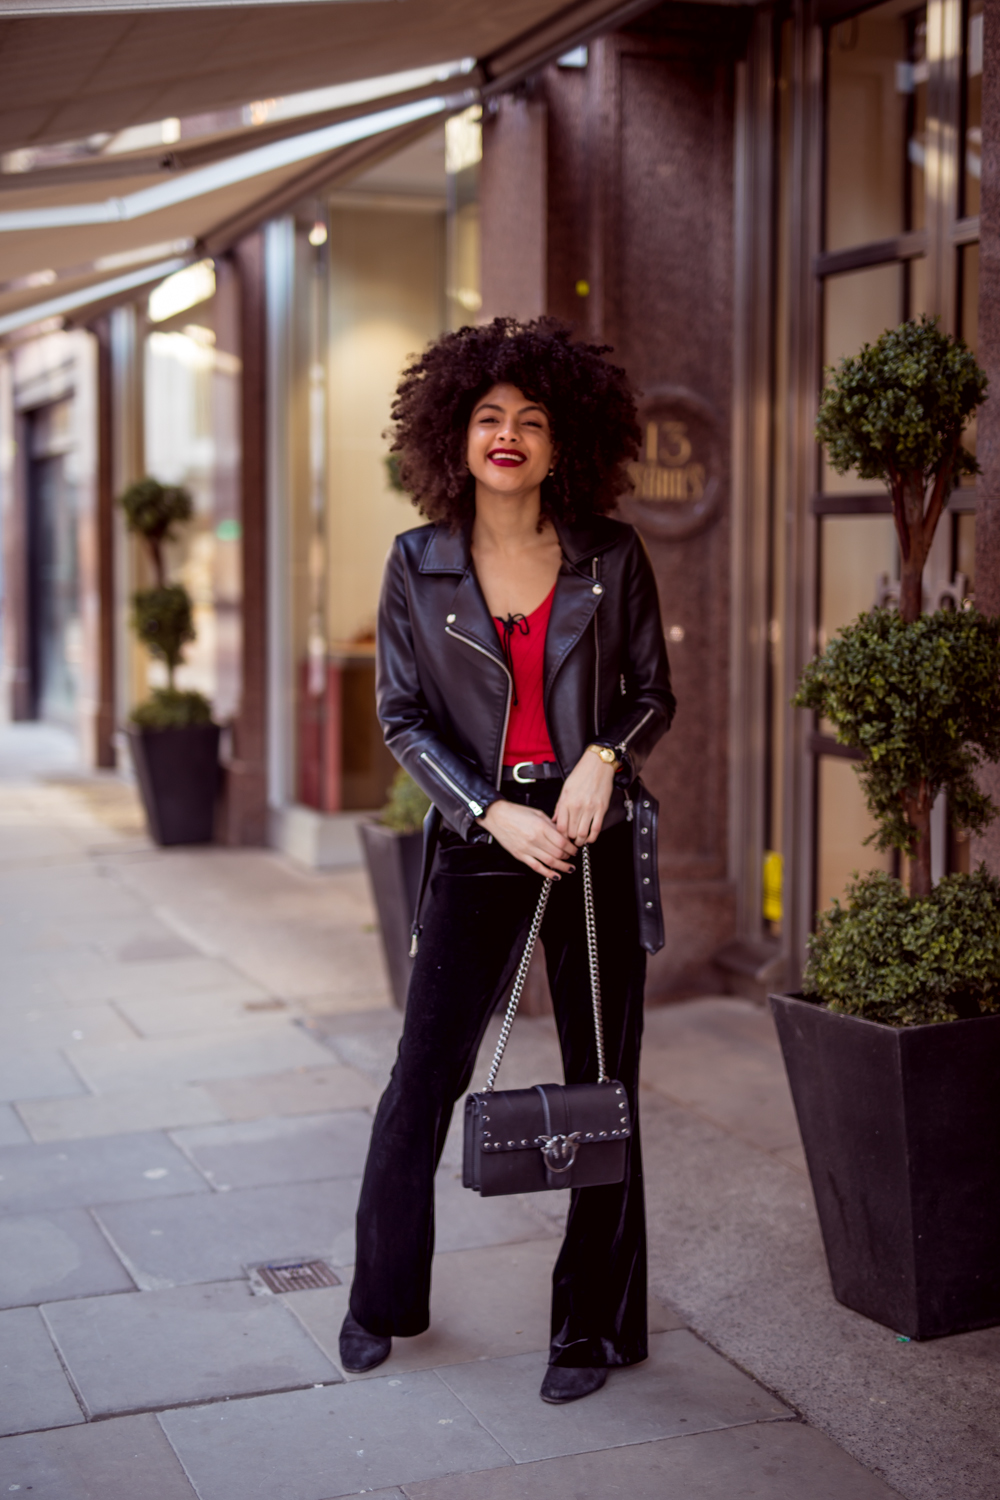 Topshop Borg Jacket TK Maxx Velvet Trousers and Pinko Love Bag Outfit